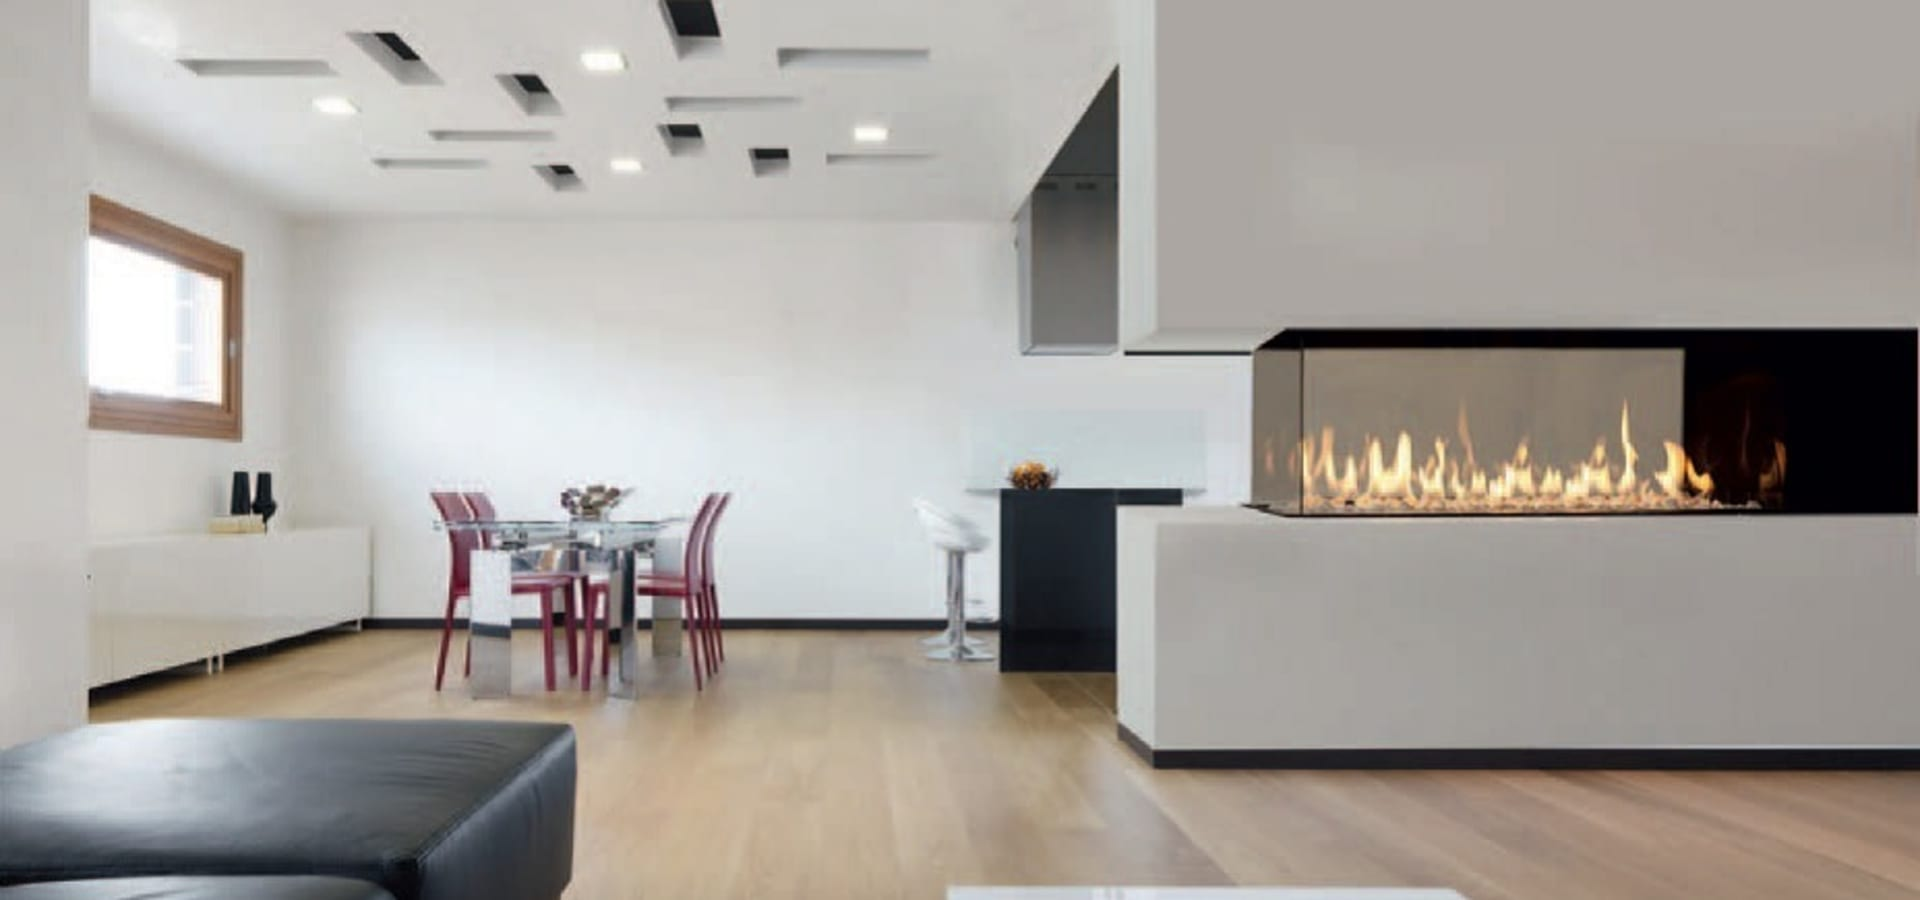 Anglia Fireplaces & Design Ltd